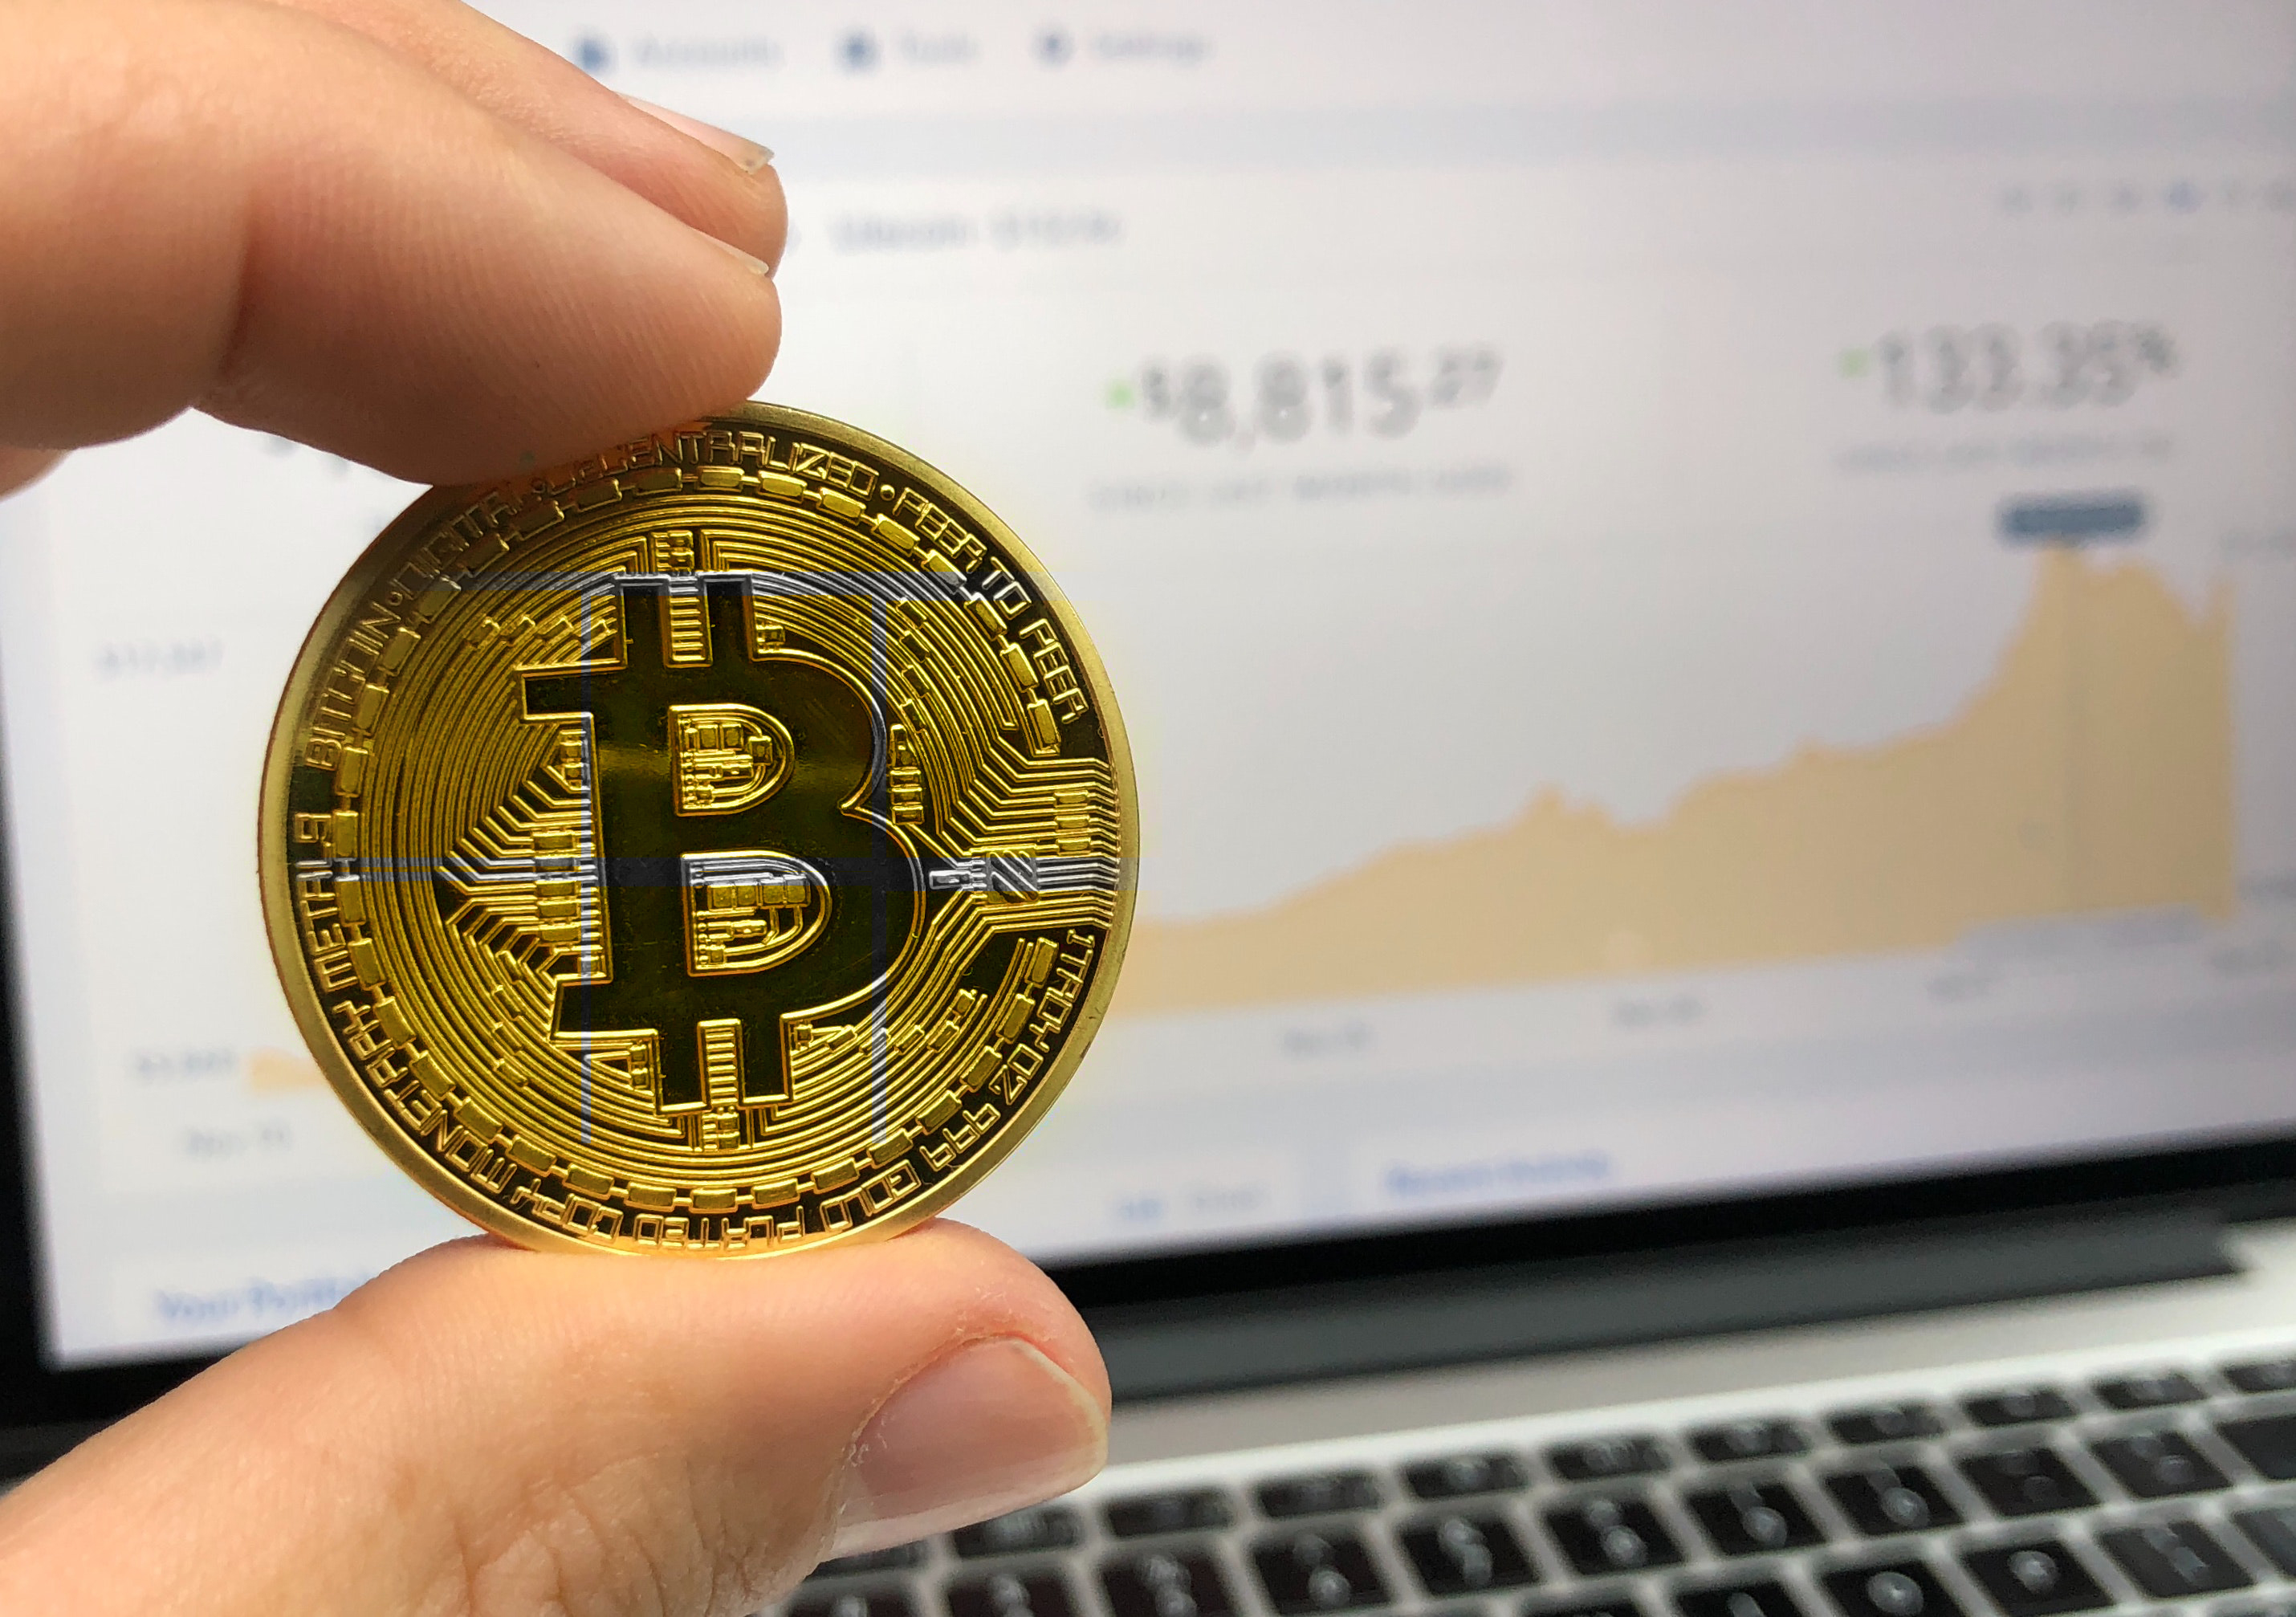 Bitcoin prediction puts its price at 55 000 USD